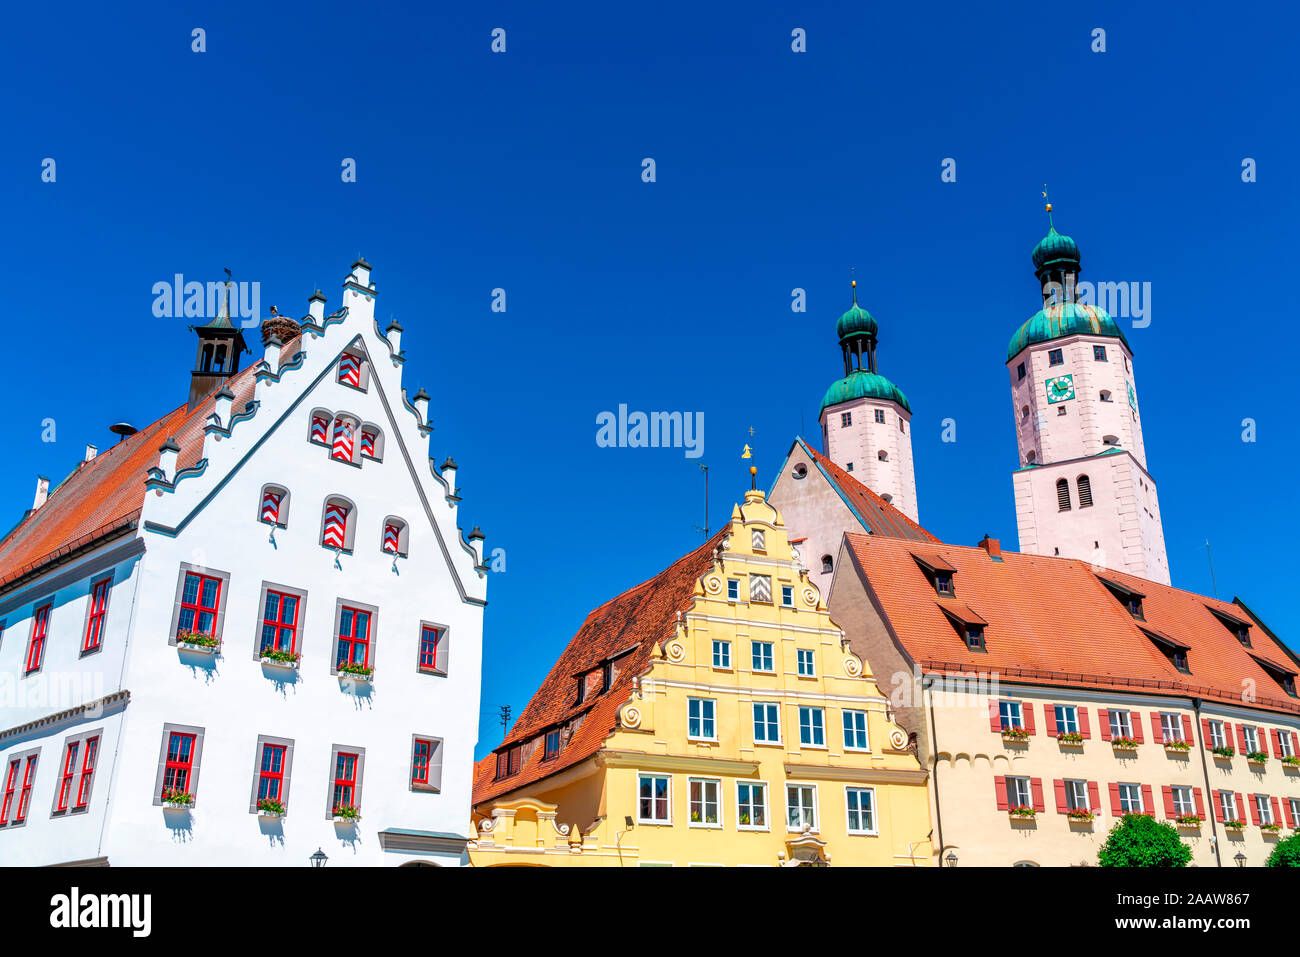 Low angle view of historic architecture and church against clear blue sky at Wemding, Bavaria, Germany Stock Photo